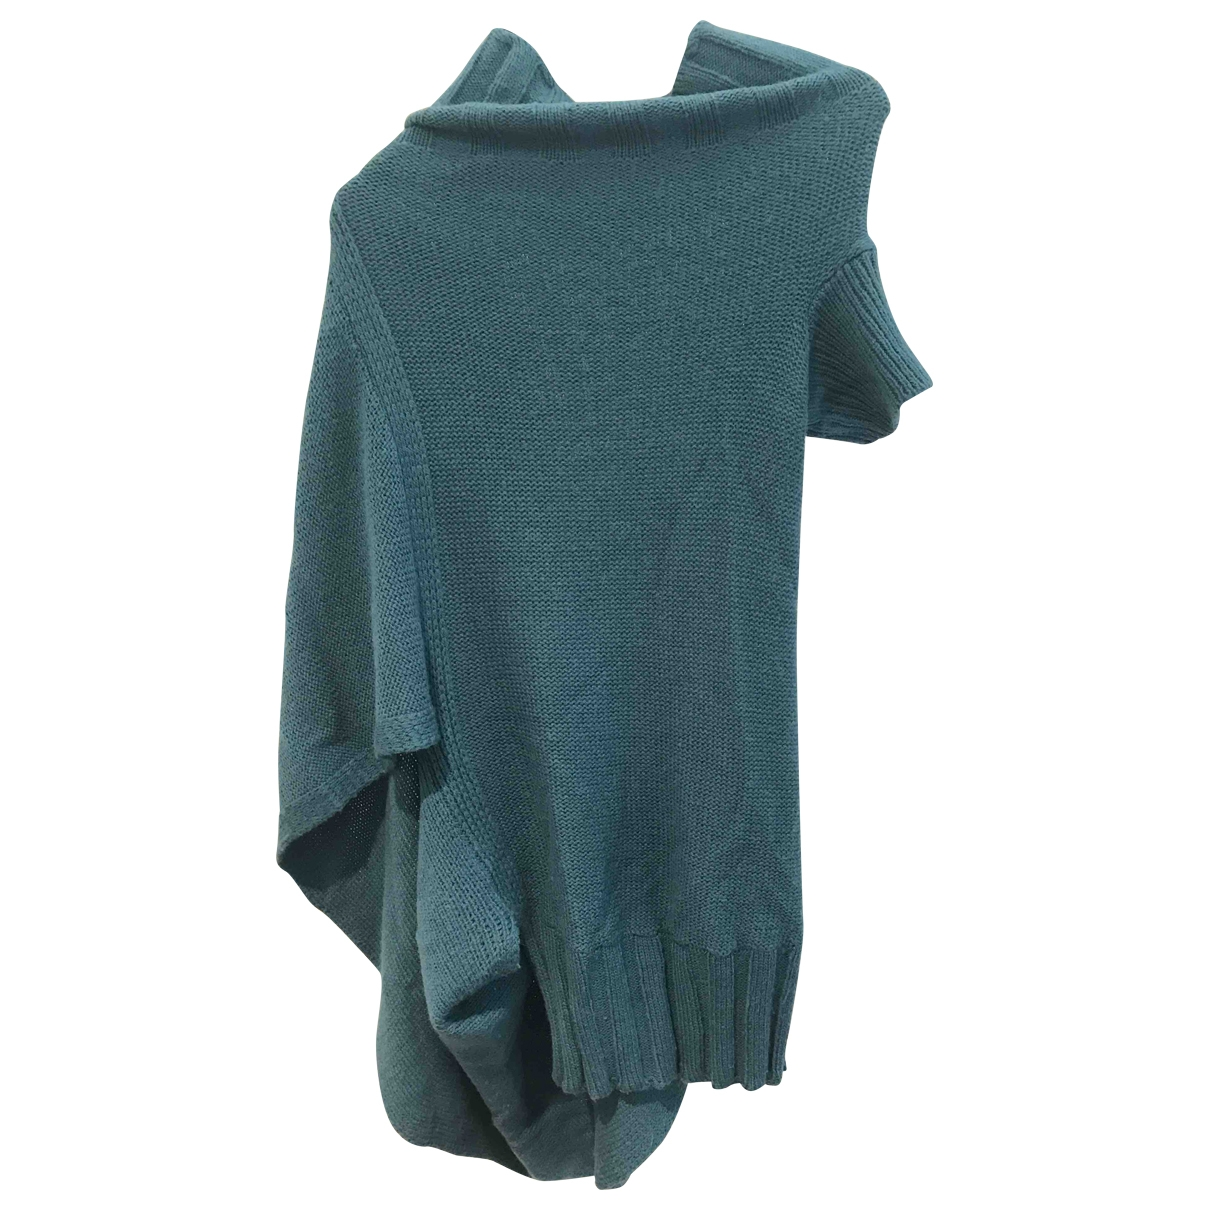 Alessandra Marchi \N Pullover in  Blau Wolle